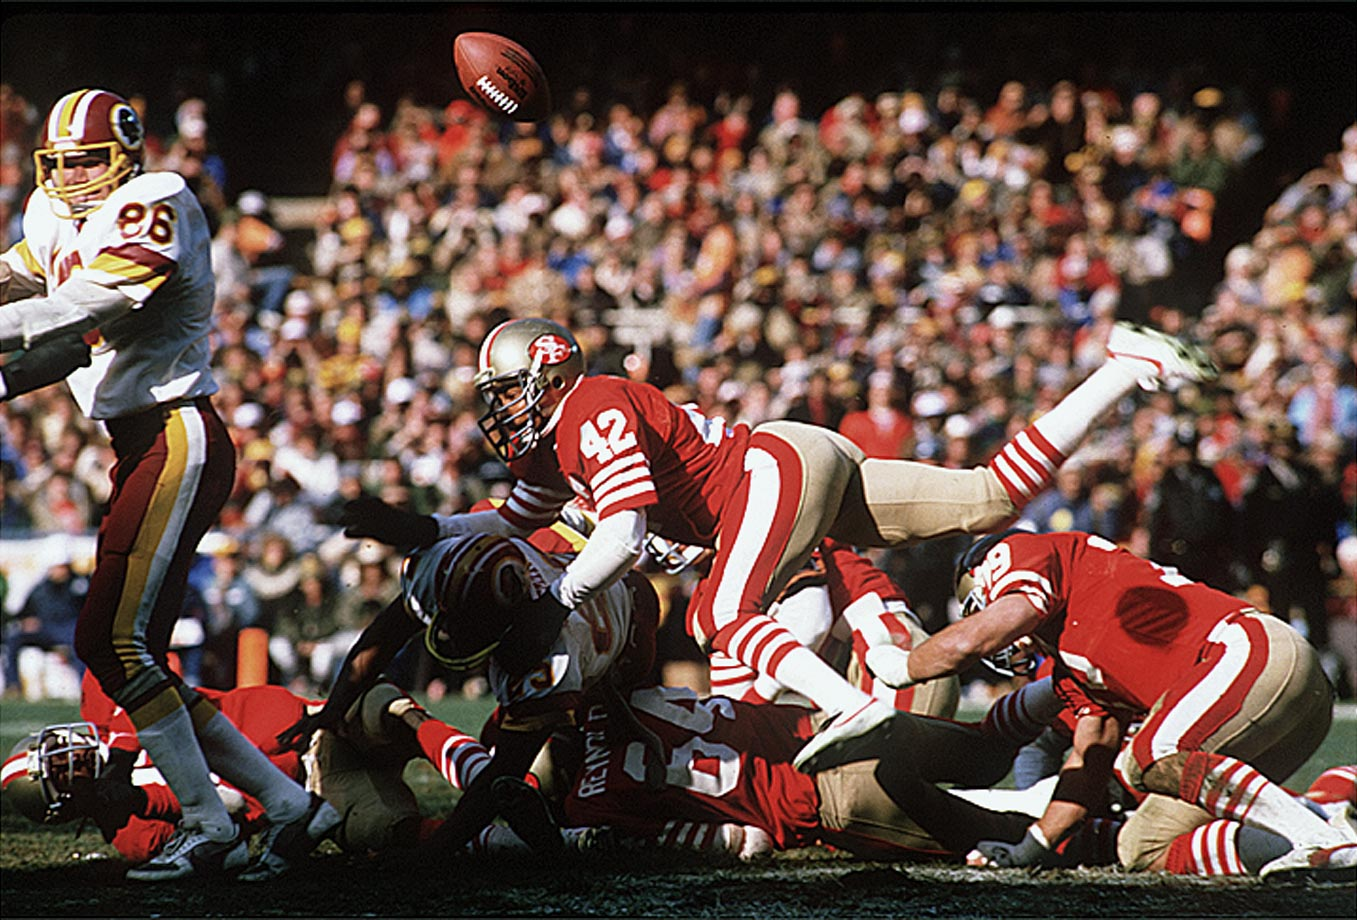 Lott's ball-hawking skills combined with his punishing style made him one of the greatest defensive backs in NFL history. His Credentials: 10-time Pro Bowl selection, eight-time All-Pro, four-time Super Bowl champion, named to NFL's All-Decade Team for the 1980s and 1990s, member of NFL's 75th anniversary team, tied for sixth all-time in career interceptions (63), ranked No. 11 on NFL's list of 100 greatest players, inducted into Hall of Fame in 2000. Others in Consideration: James Farrior (1997, Jets); Willie Roaf (1993, Saints); Leslie O'Neal (1986, Chargers); Mike Munchak (1982, Oilers); Ottis Anderson (1979, Rams)